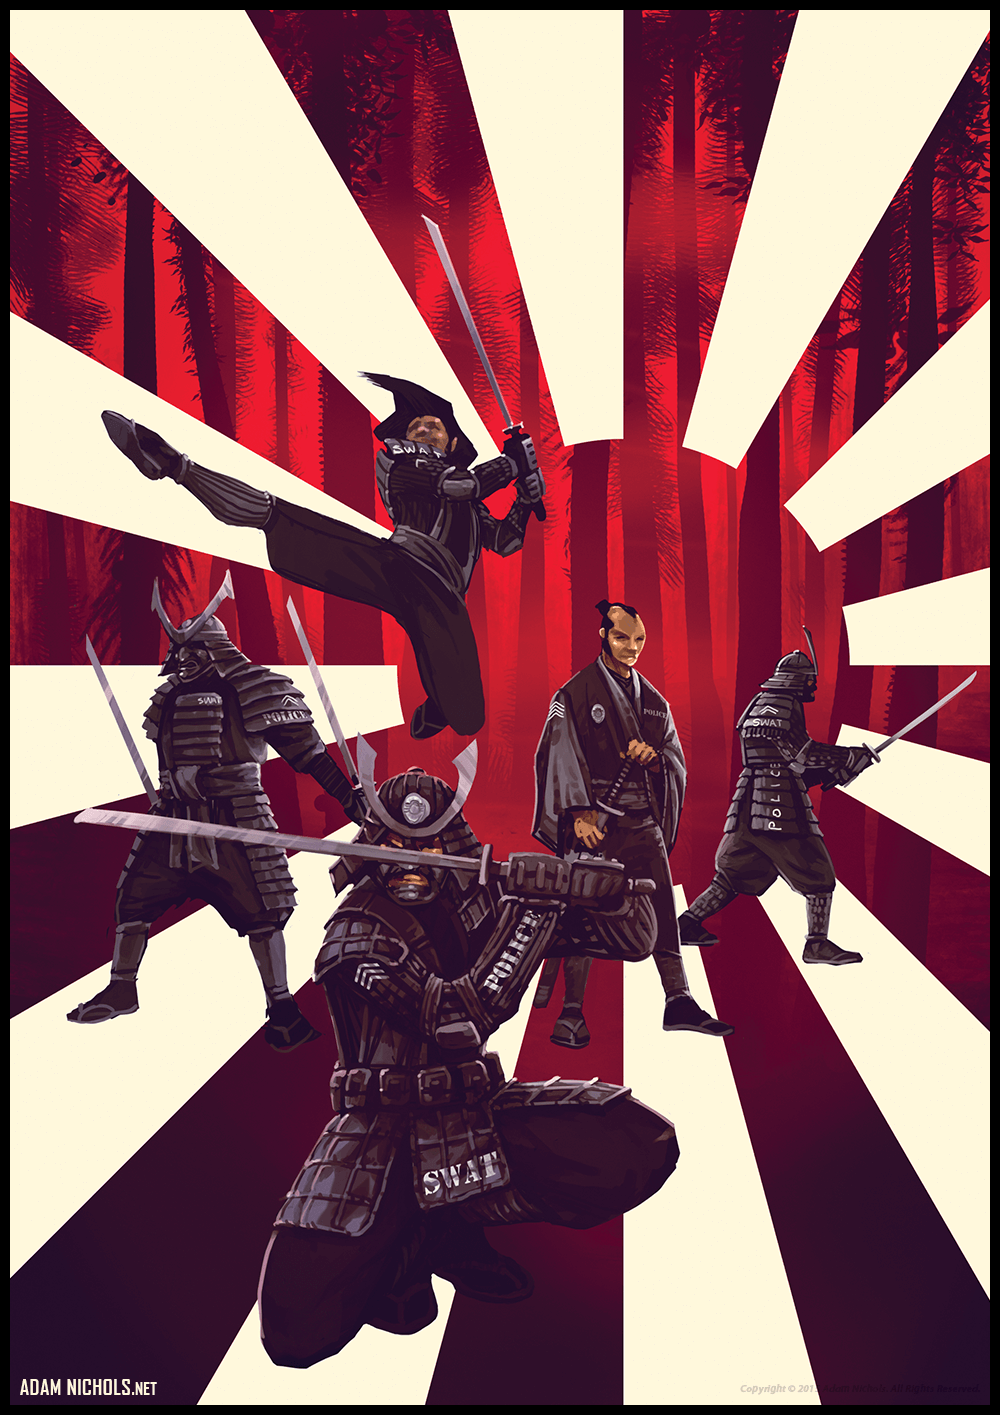 Samurai SWAT Police Artwork